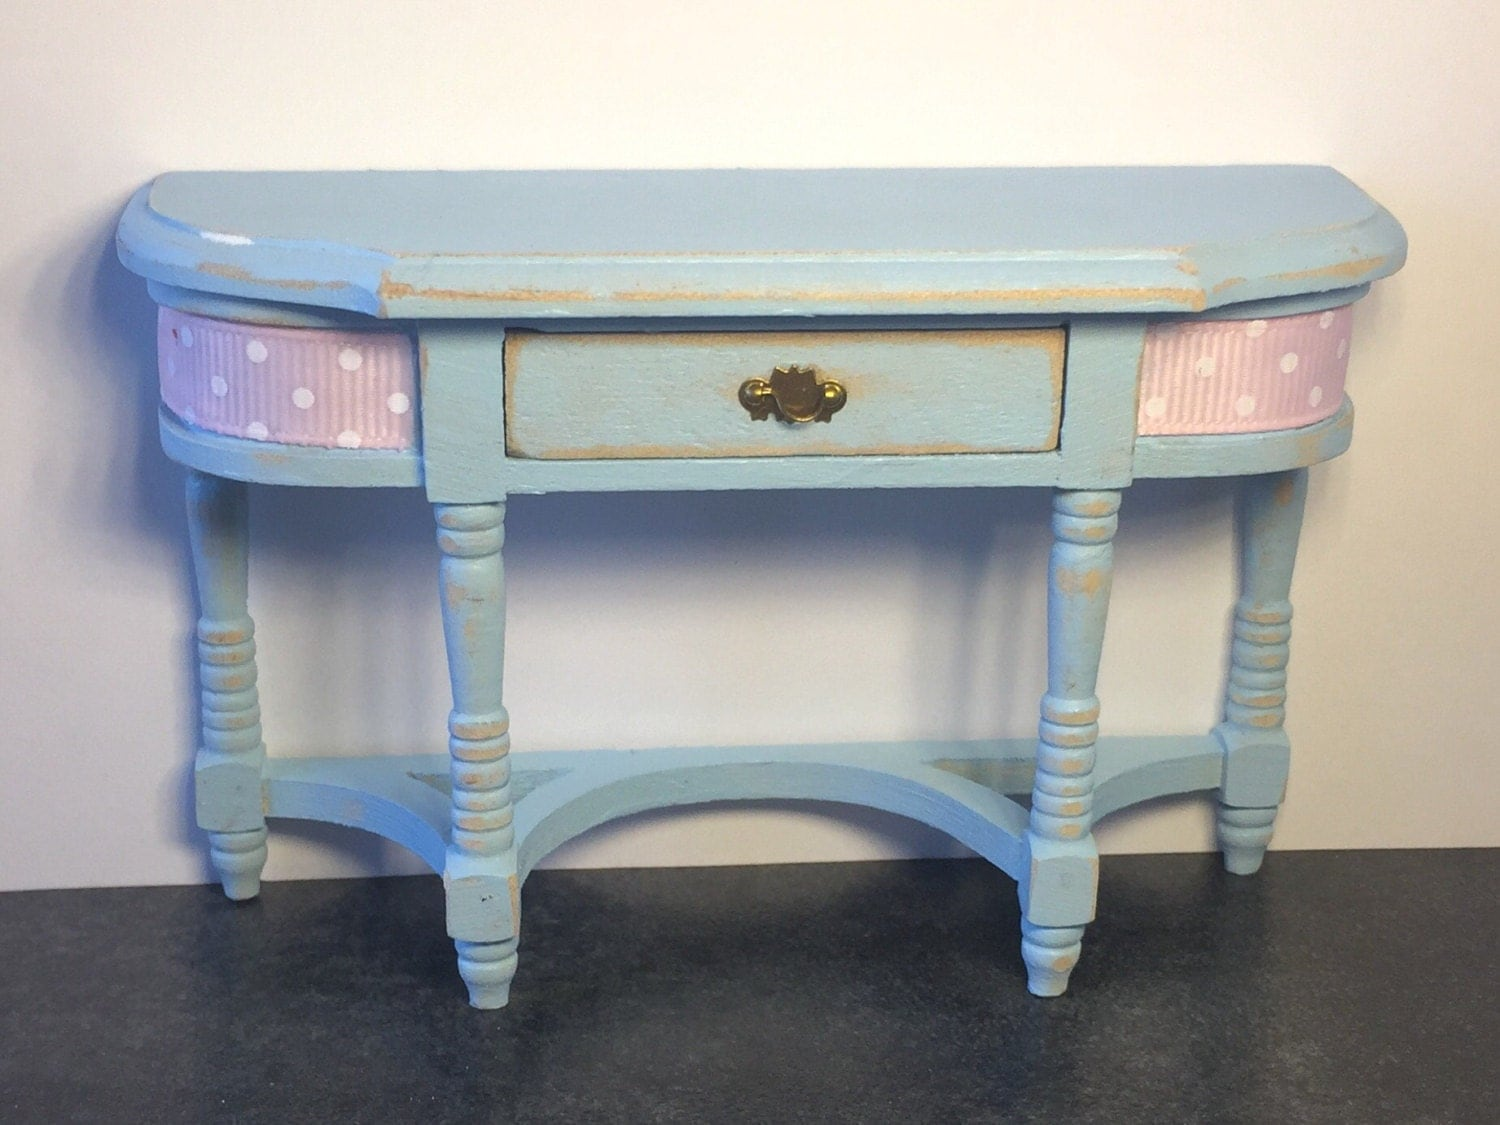 Dolls house miniature furniture shabby console table one twelth scale kitchen